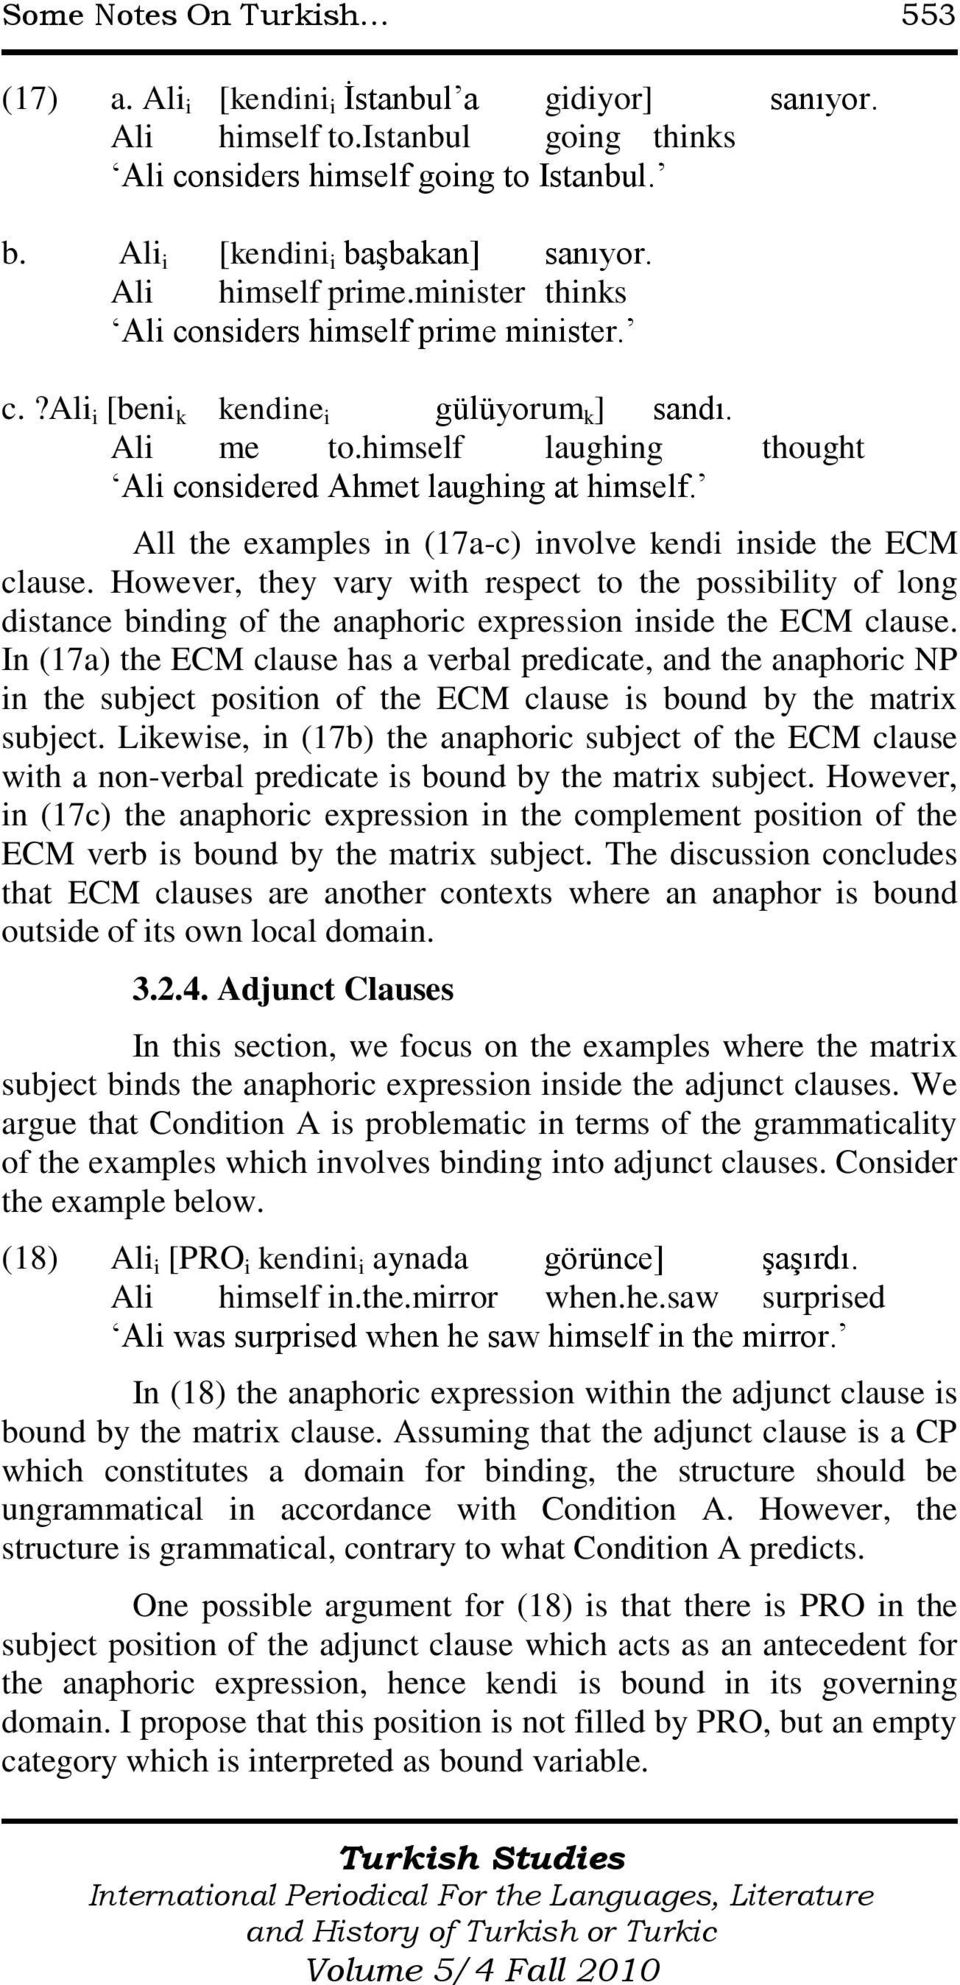 All the examples in (17a-c) involve kendi inside the ECM clause. However, they vary with respect to the possibility of long distance binding of the anaphoric expression inside the ECM clause.